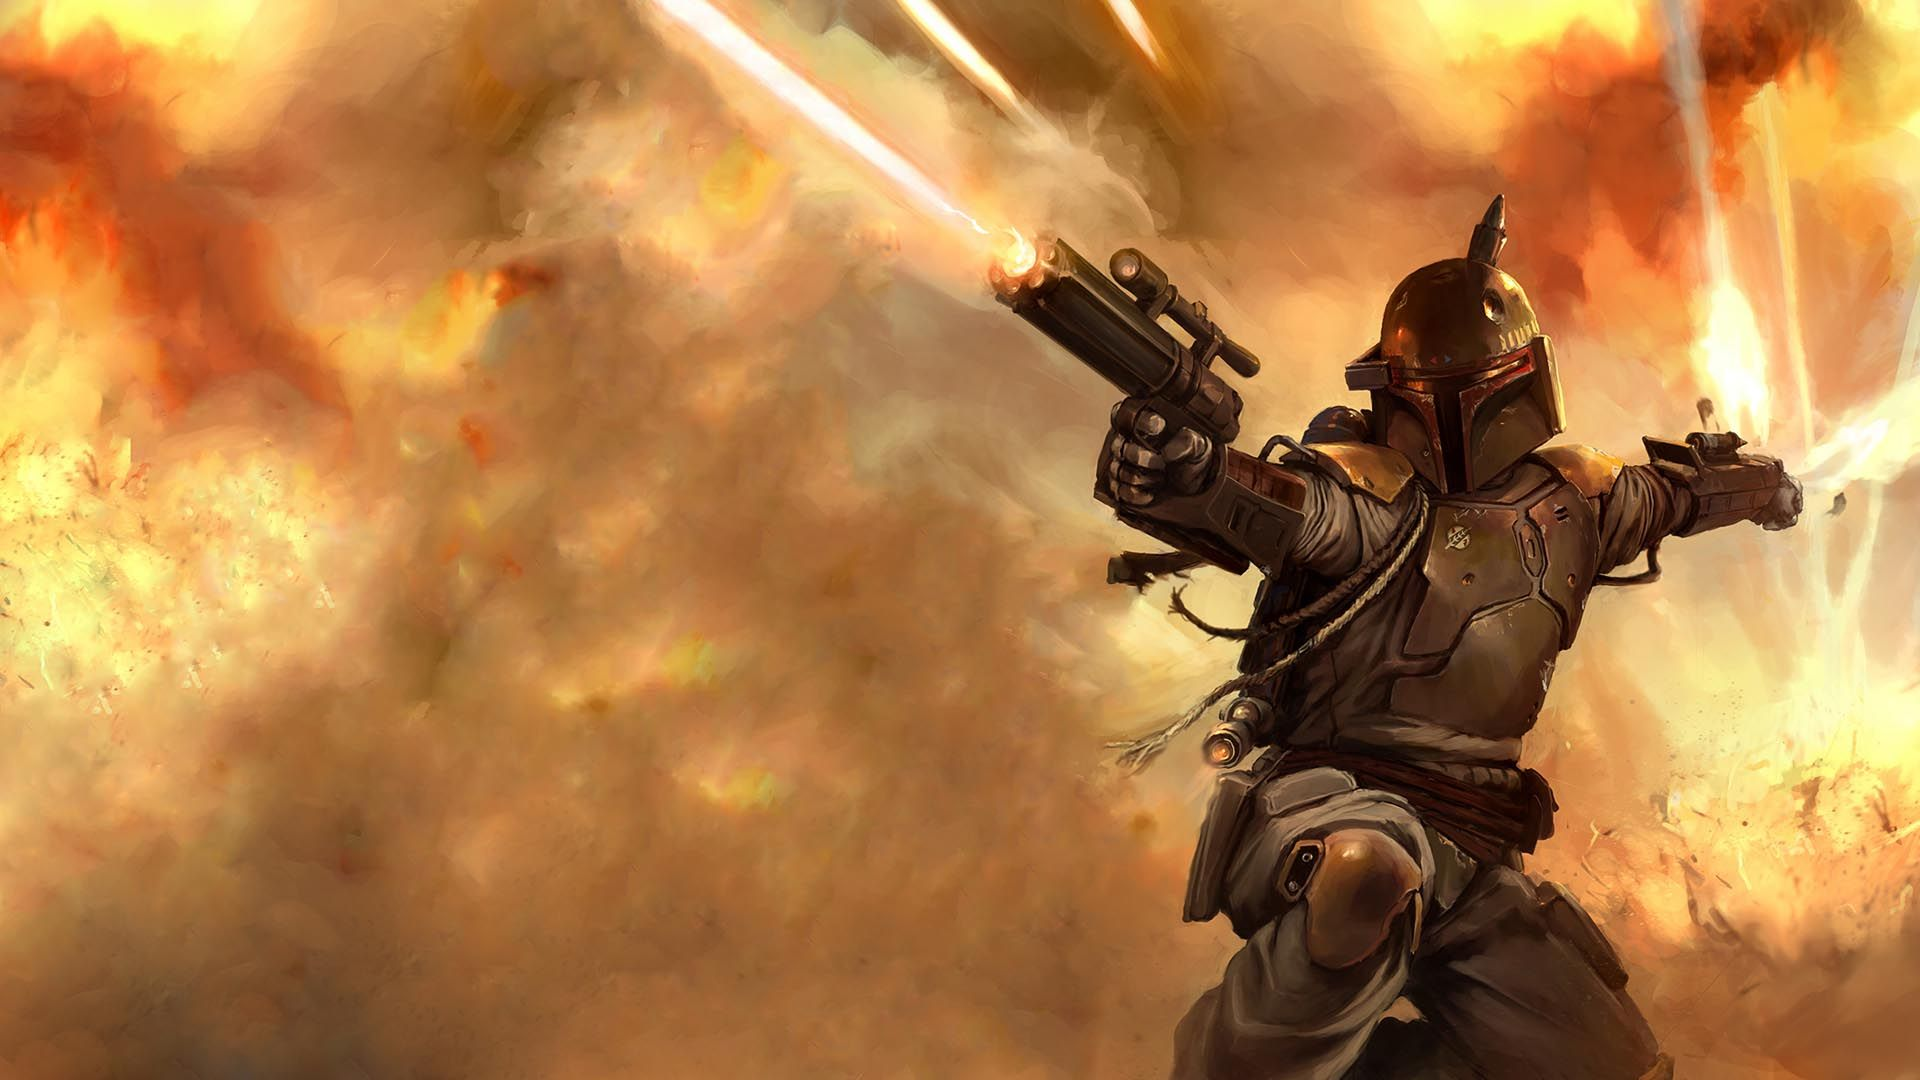 Badass Star Wars Wallpapers 10 Jpg 1920 1080 Star Wars Wallpaper Star Wars Background Boba Fett Wallpaper